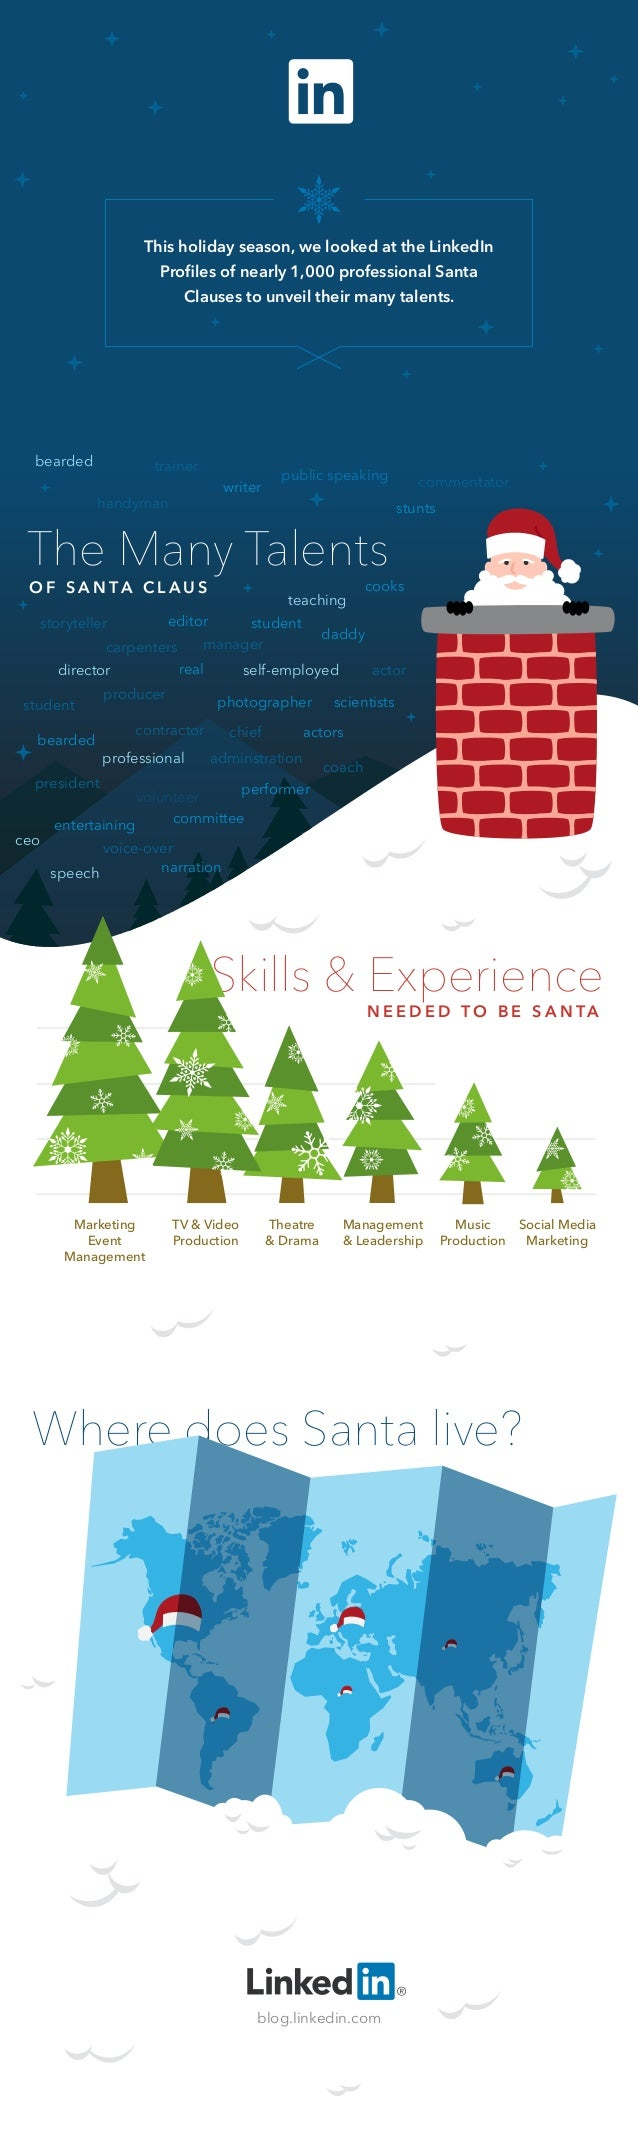 This holiday season, we looked at the LinkedIn Profiles of nearly 1,000 professional Santa Clauses to unveil their many tal...